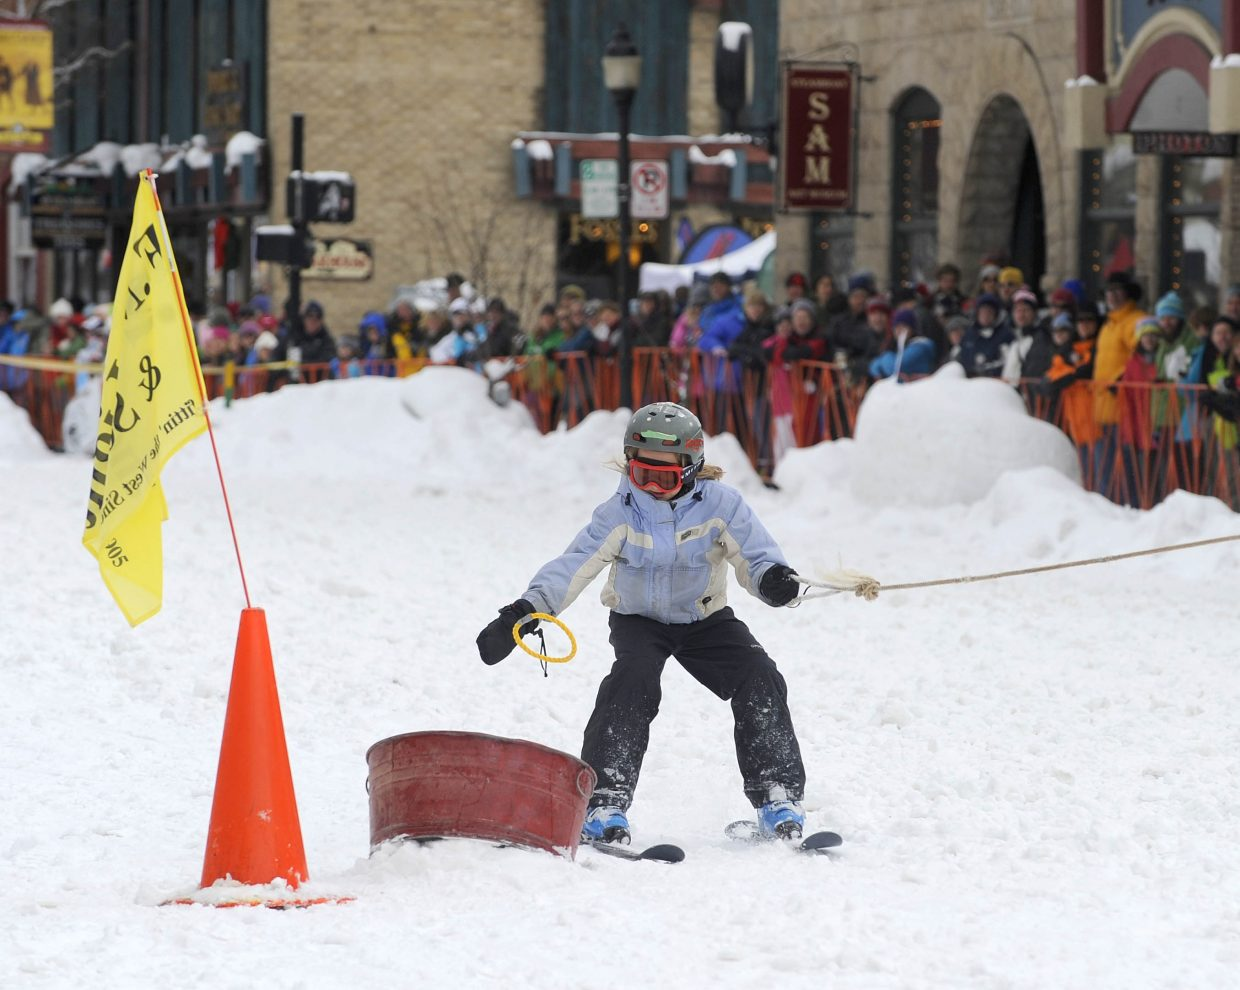 Nine-year-old Jade Henderson tries to get a ring into a bucket during the Winter Carnival street events Saturday.